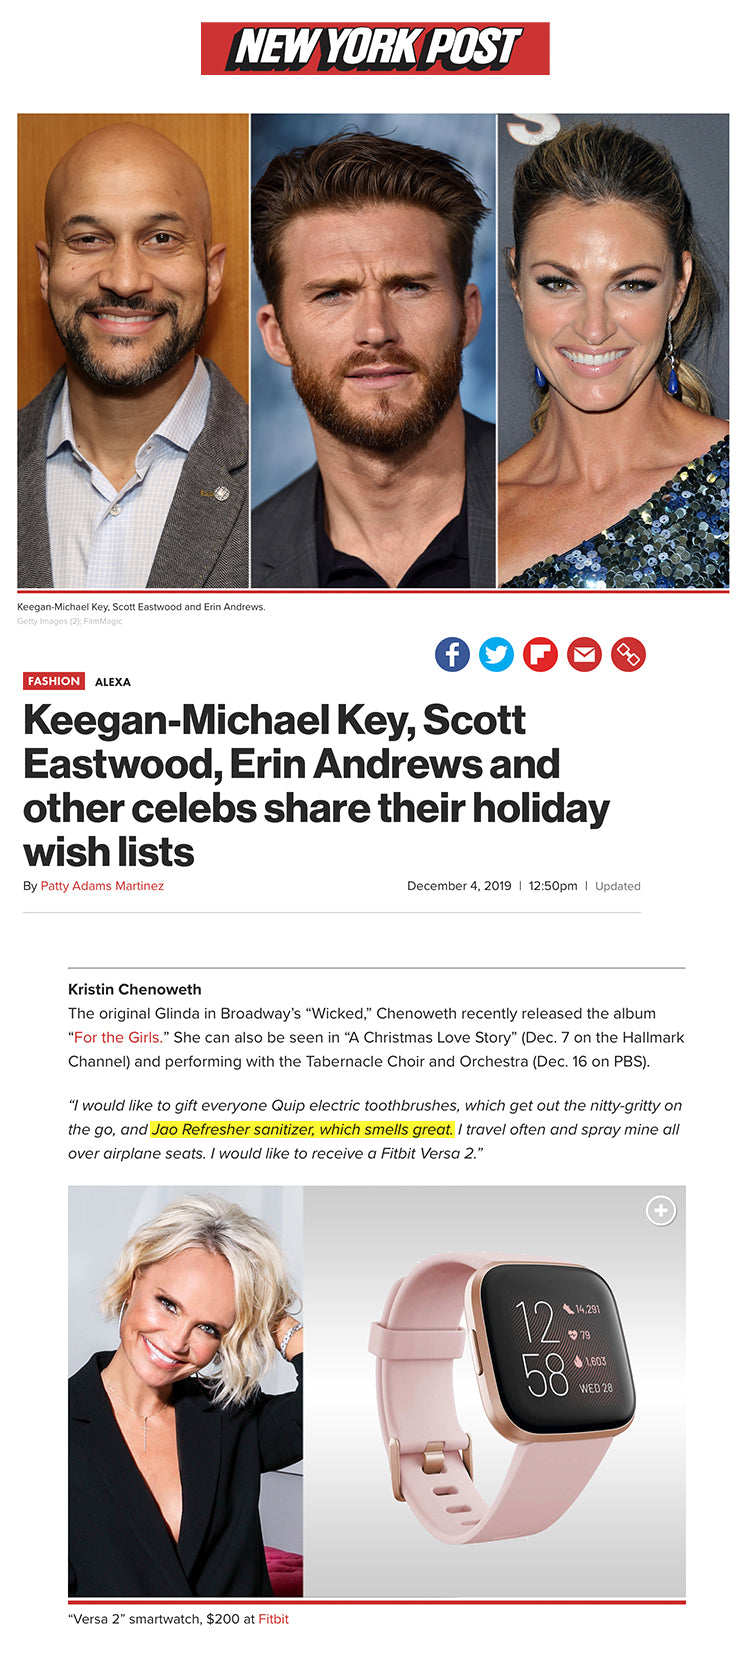 Keegan-Michael Key, Scott Eastwood, Erin Andrews and other celebs share their holiday wish lists. goe oil jao